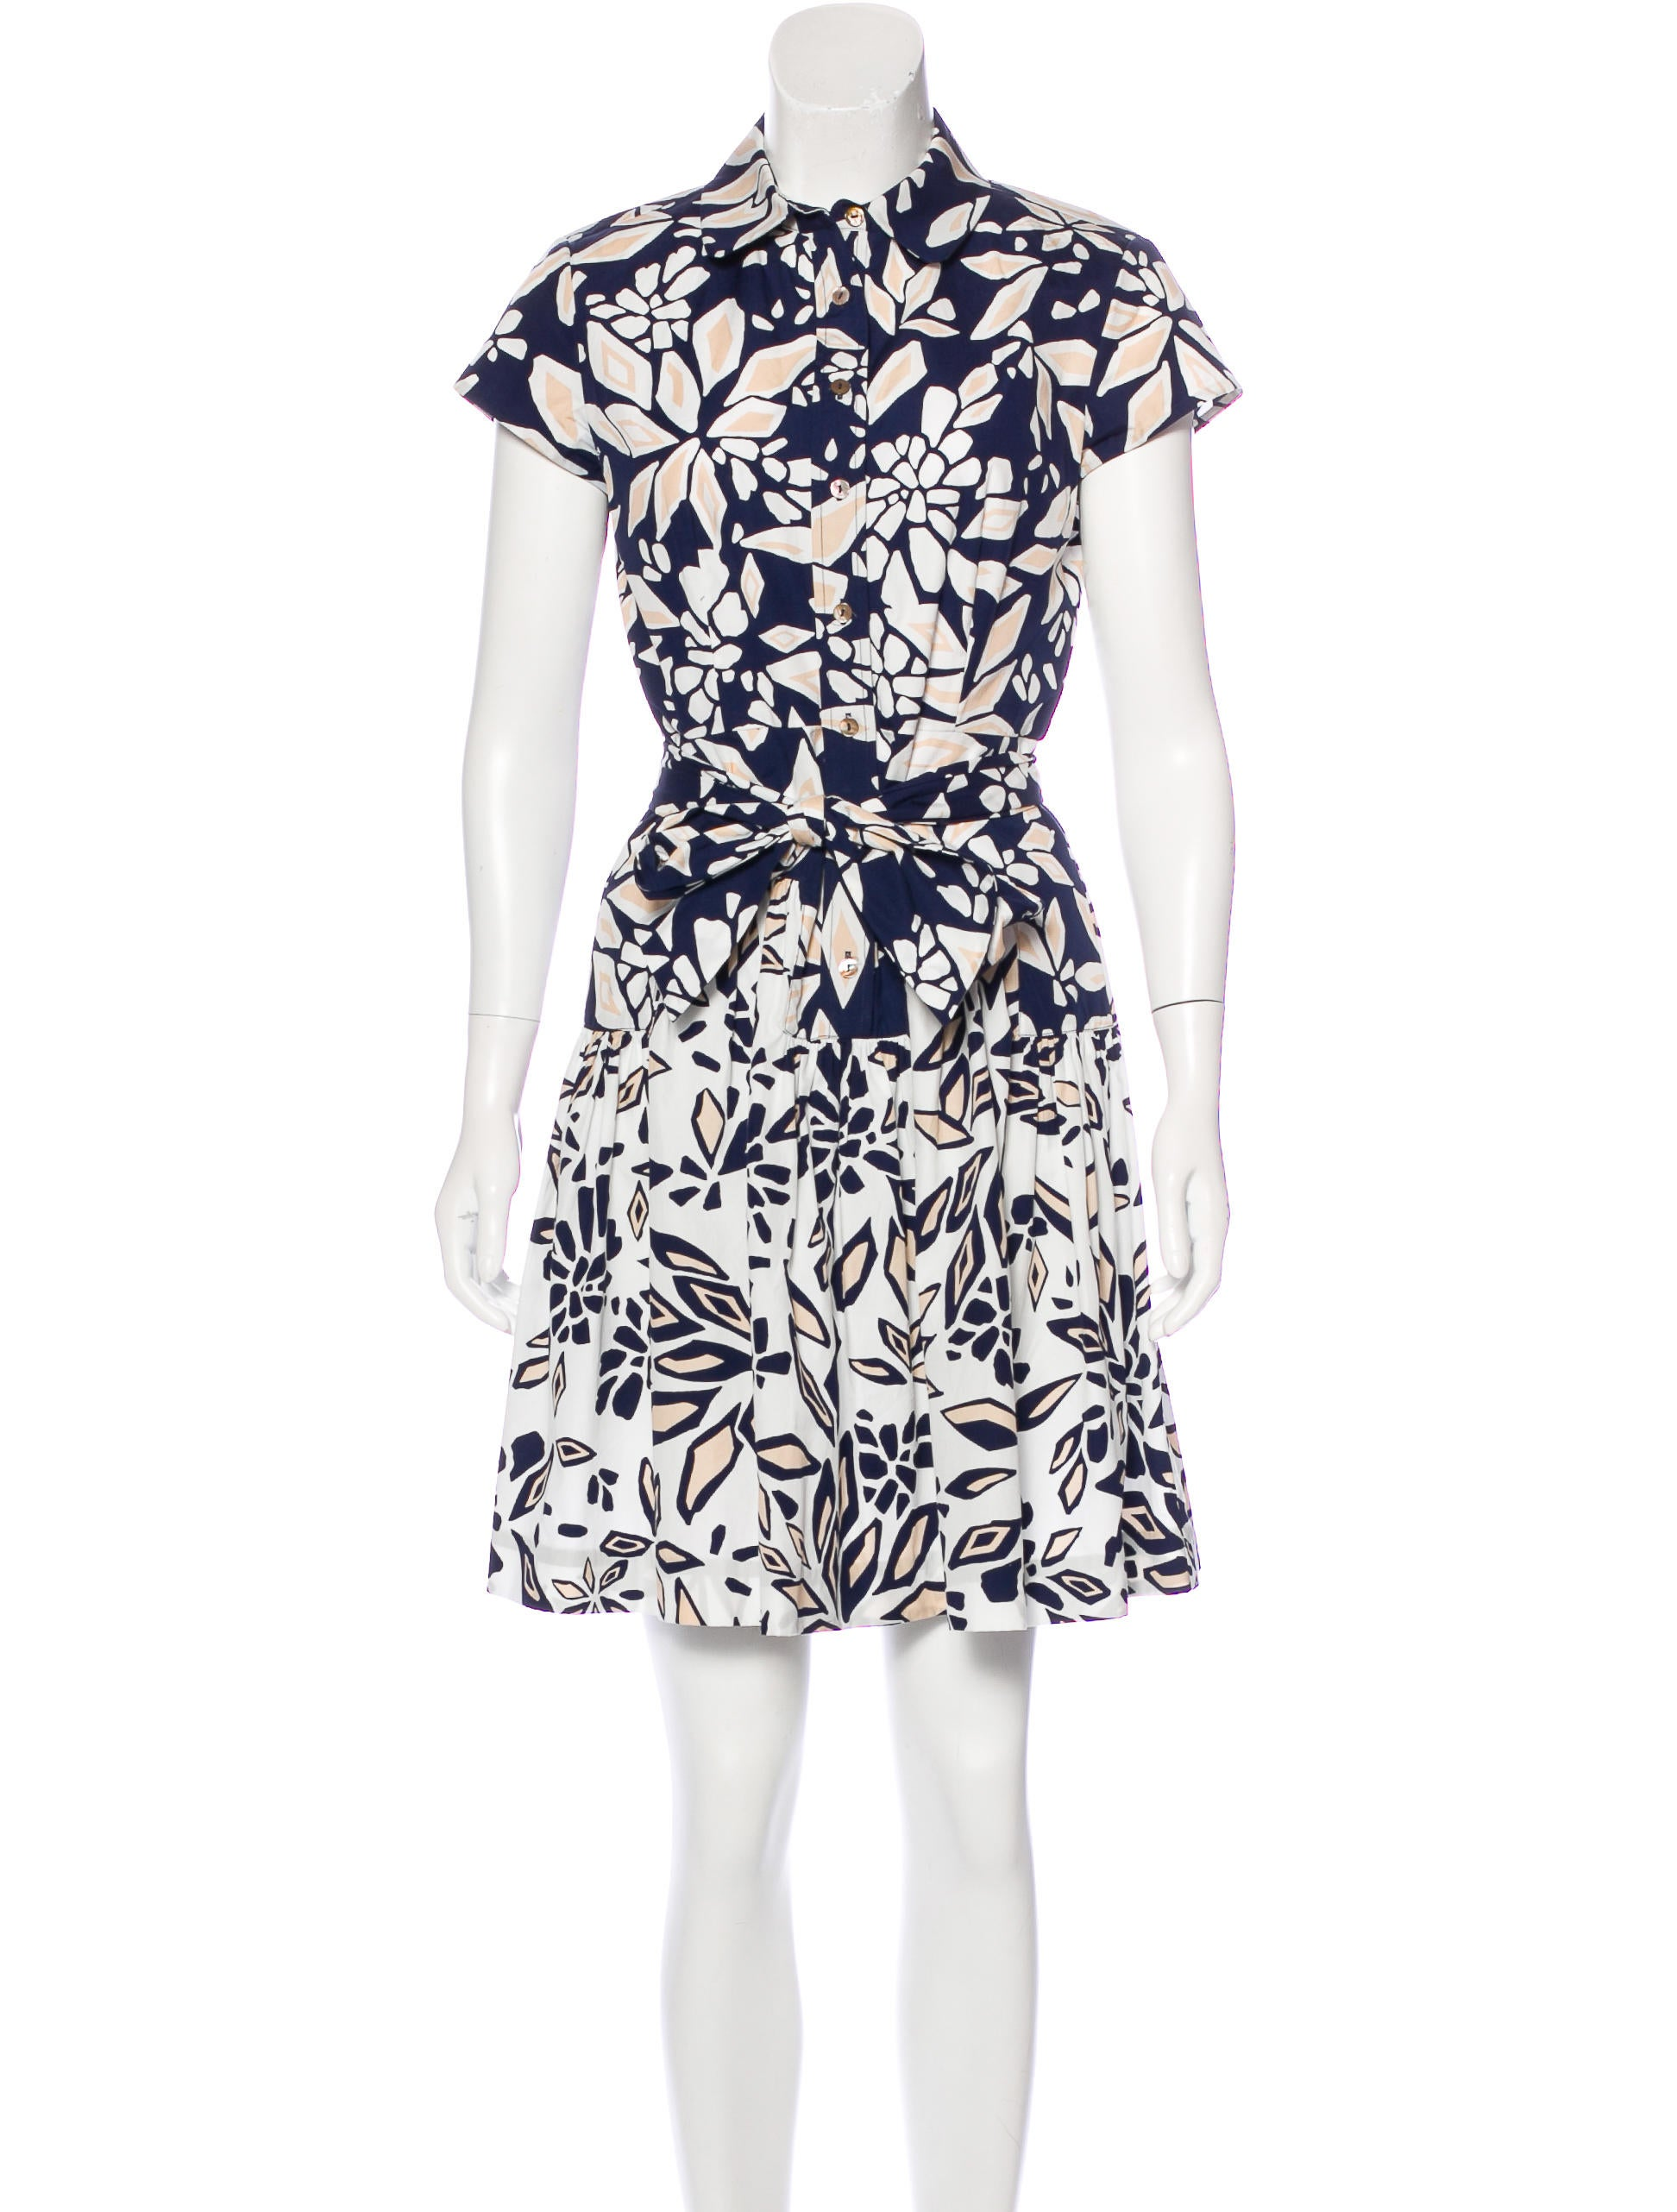 Diane Von Furstenberg Floral Print Button Up Dress